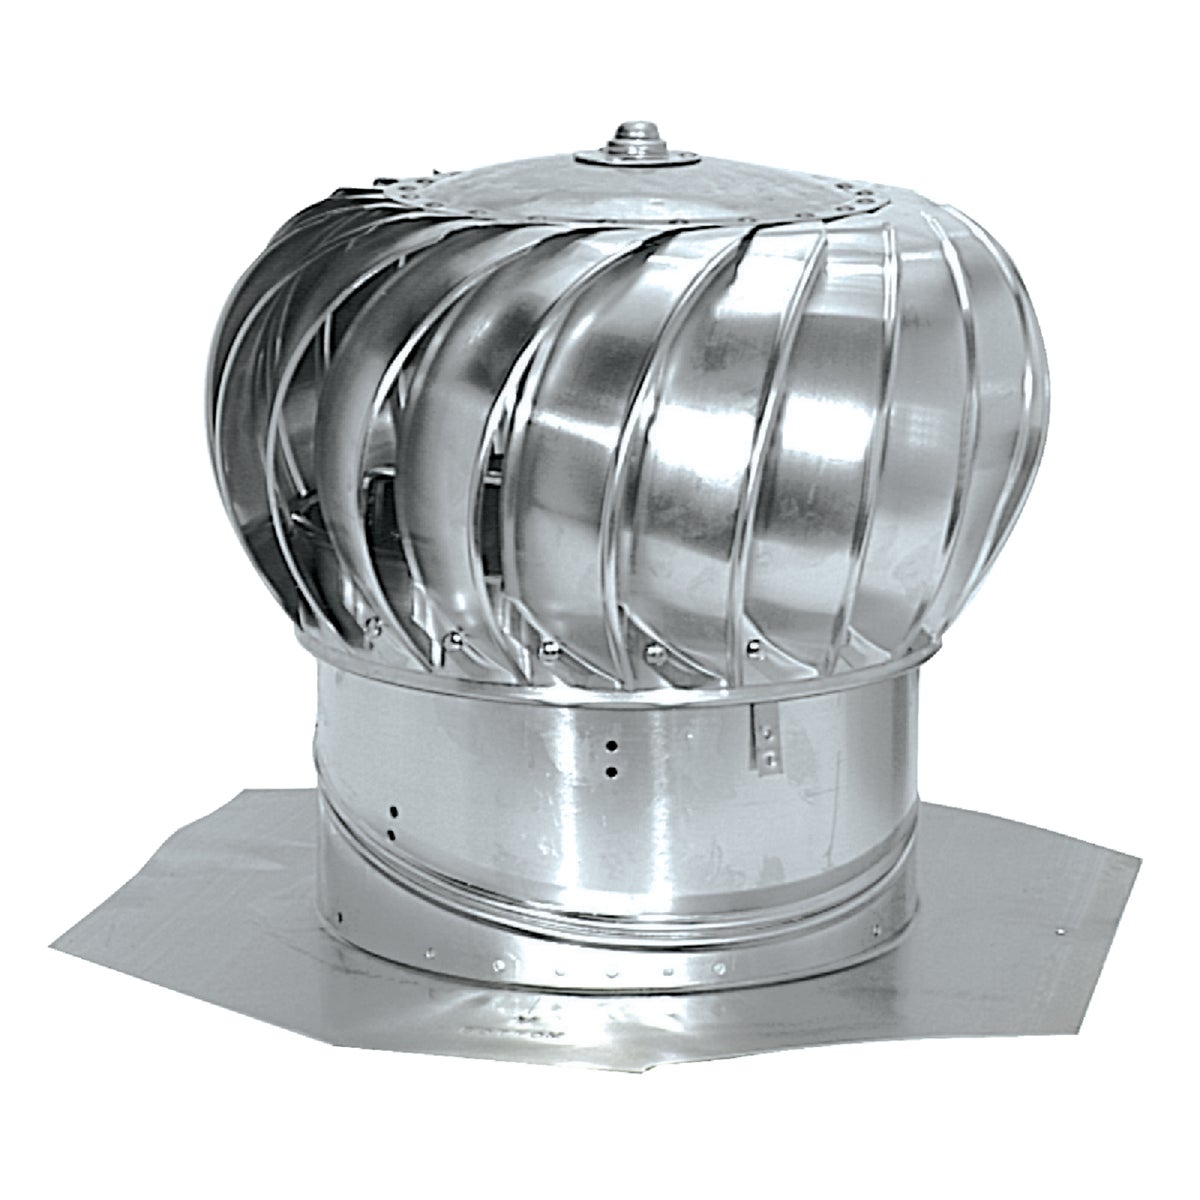 "12"" MIL INT BRC TURBINE - 52103 by Air Vent Inc"